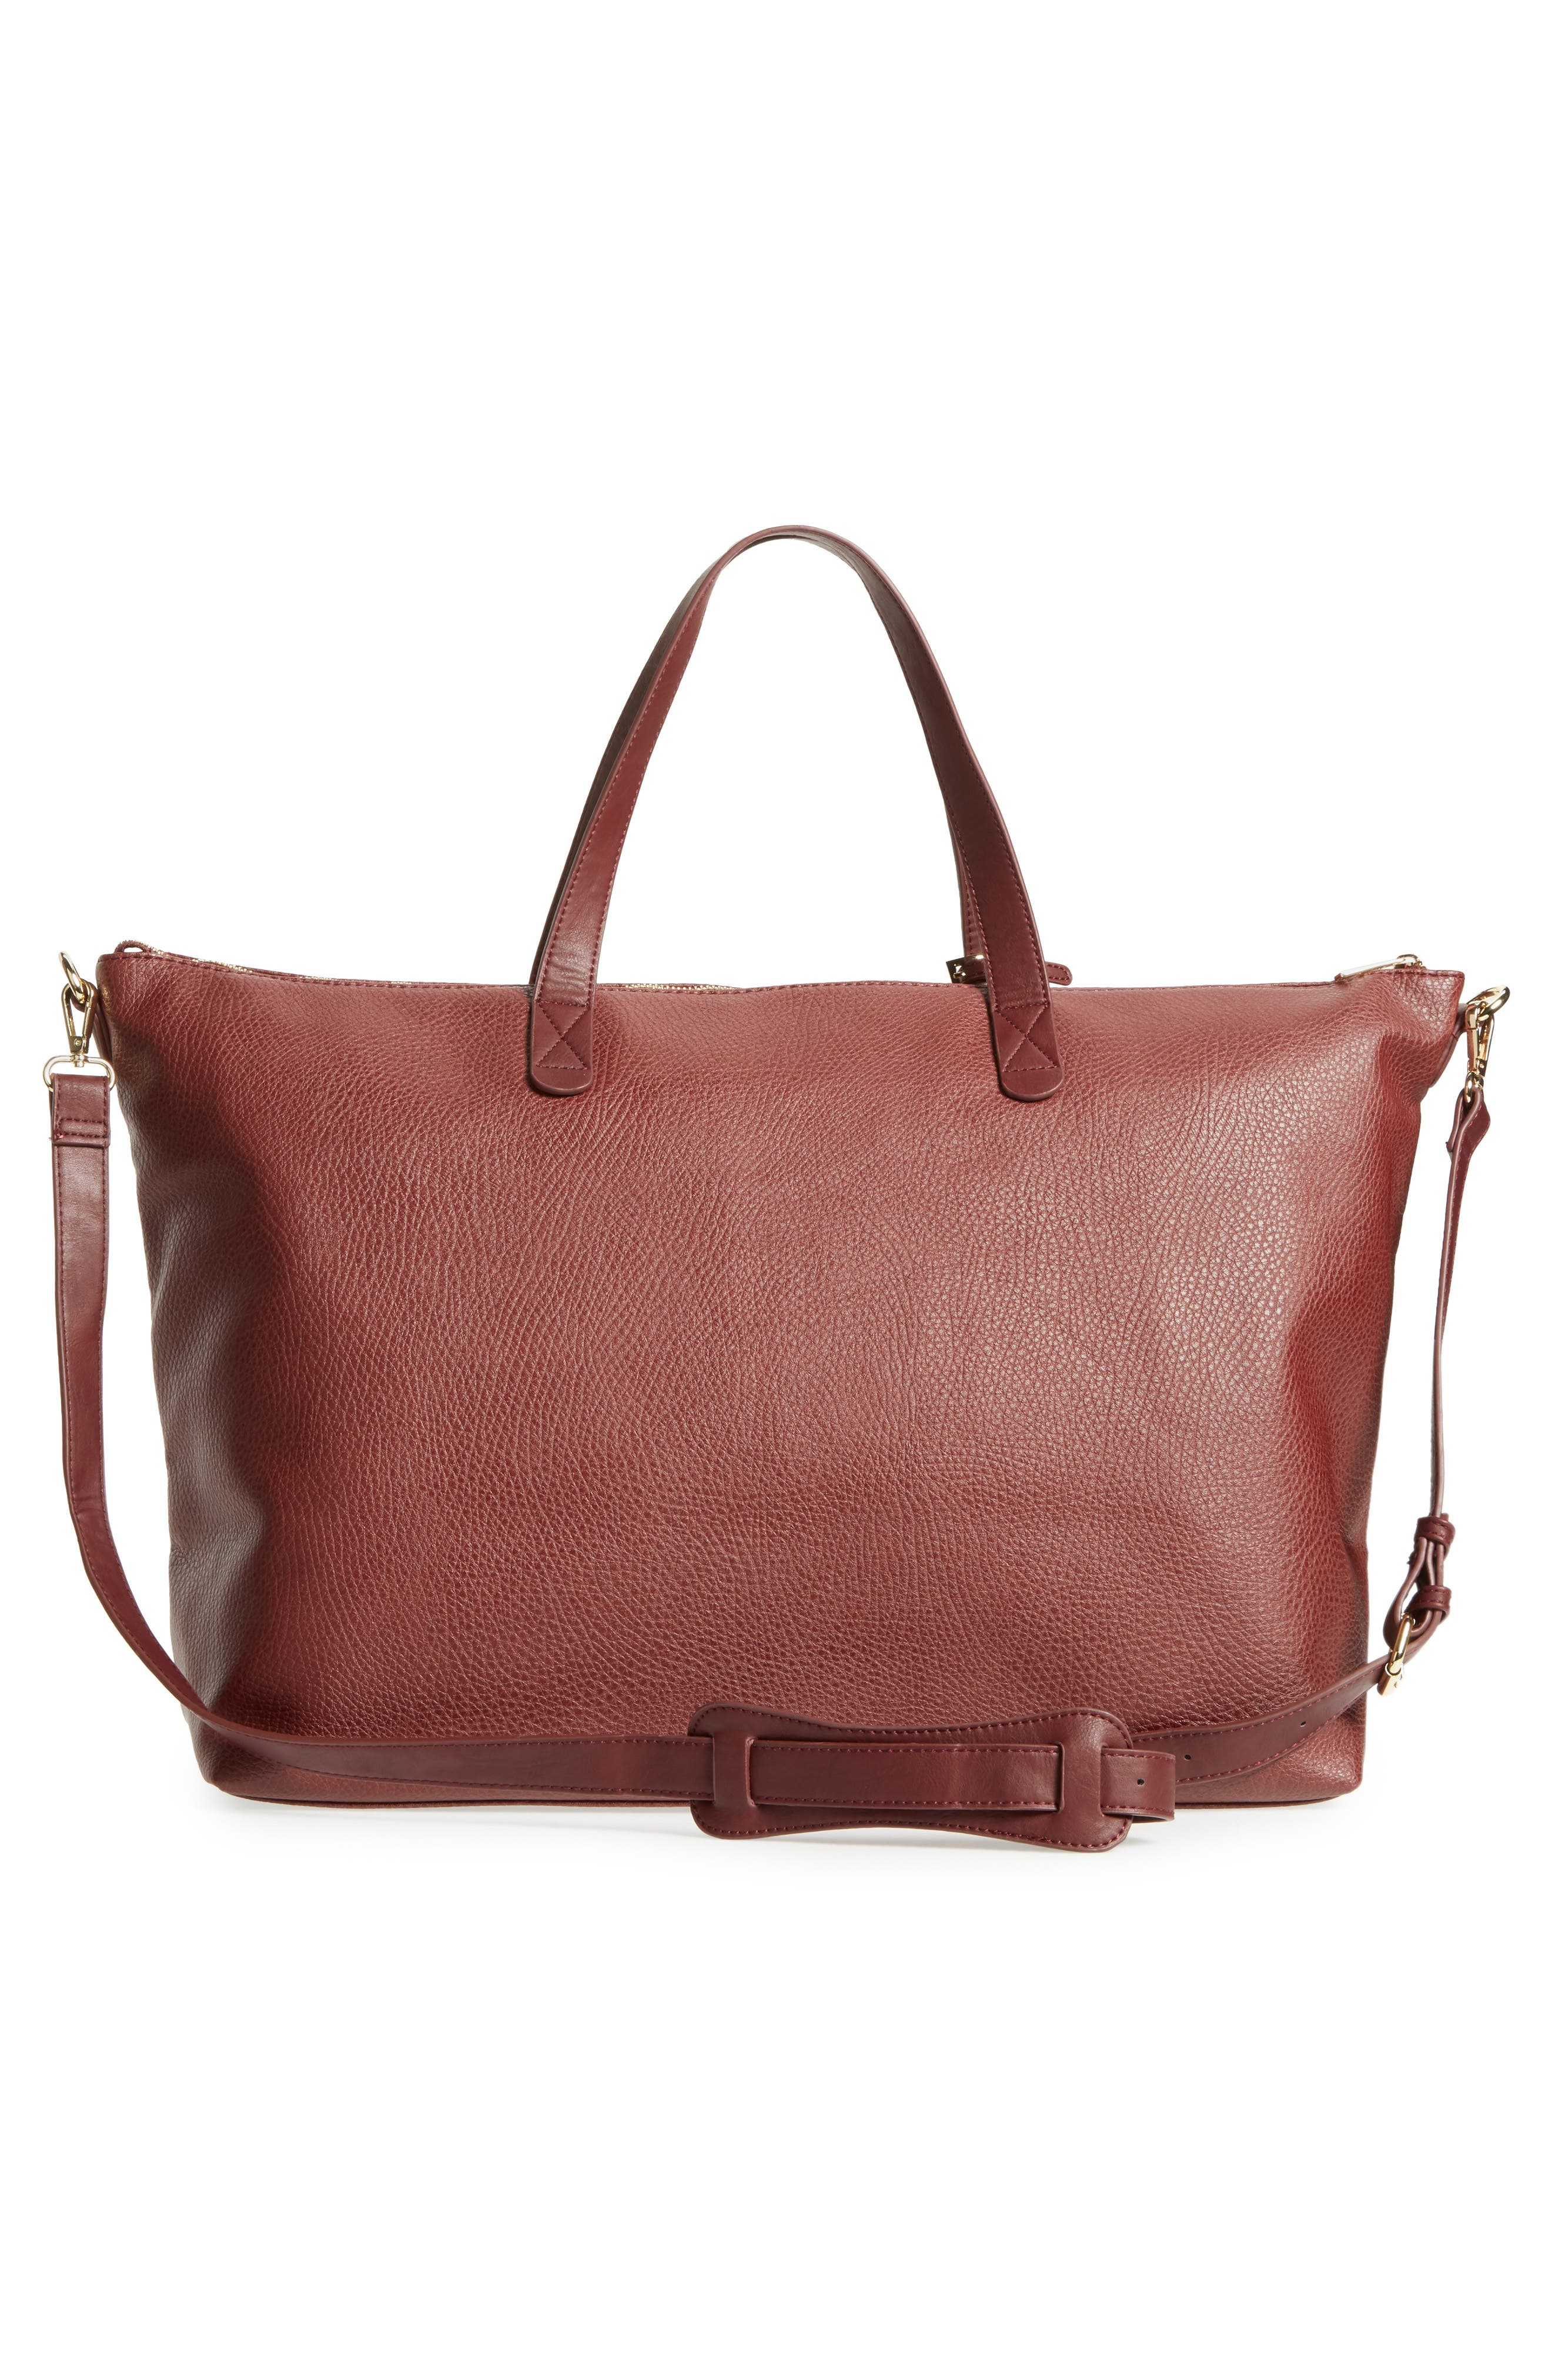 Candice Oversize Travel Tote,                             Alternate thumbnail 2, color,                             Oxblood